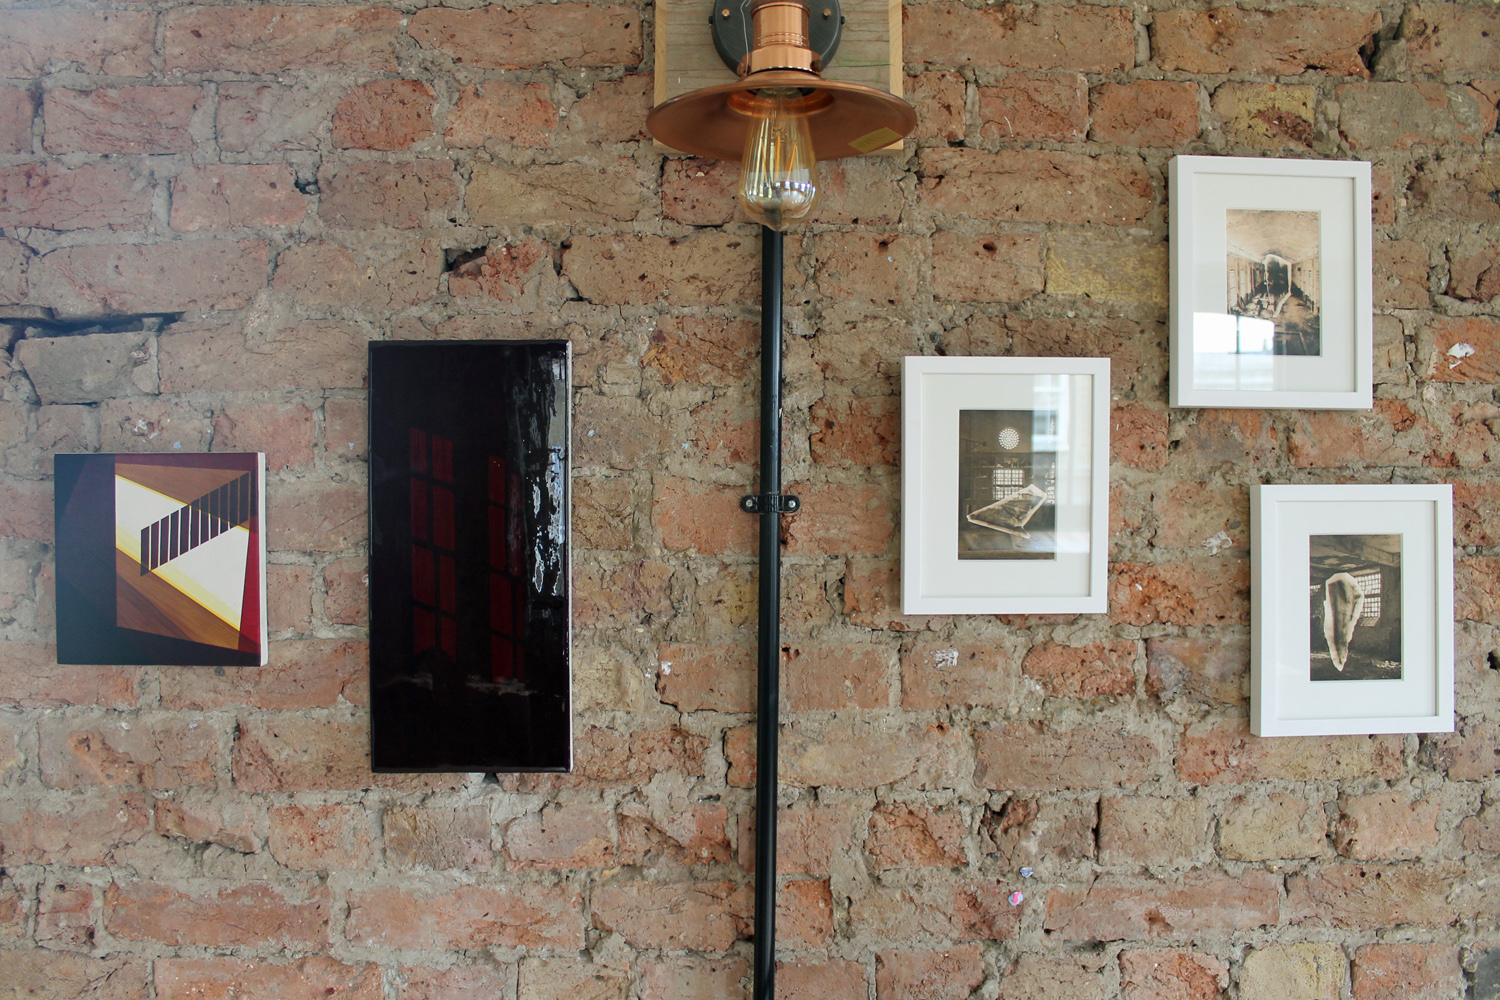 Installation view (pieces by Molly Behagg)